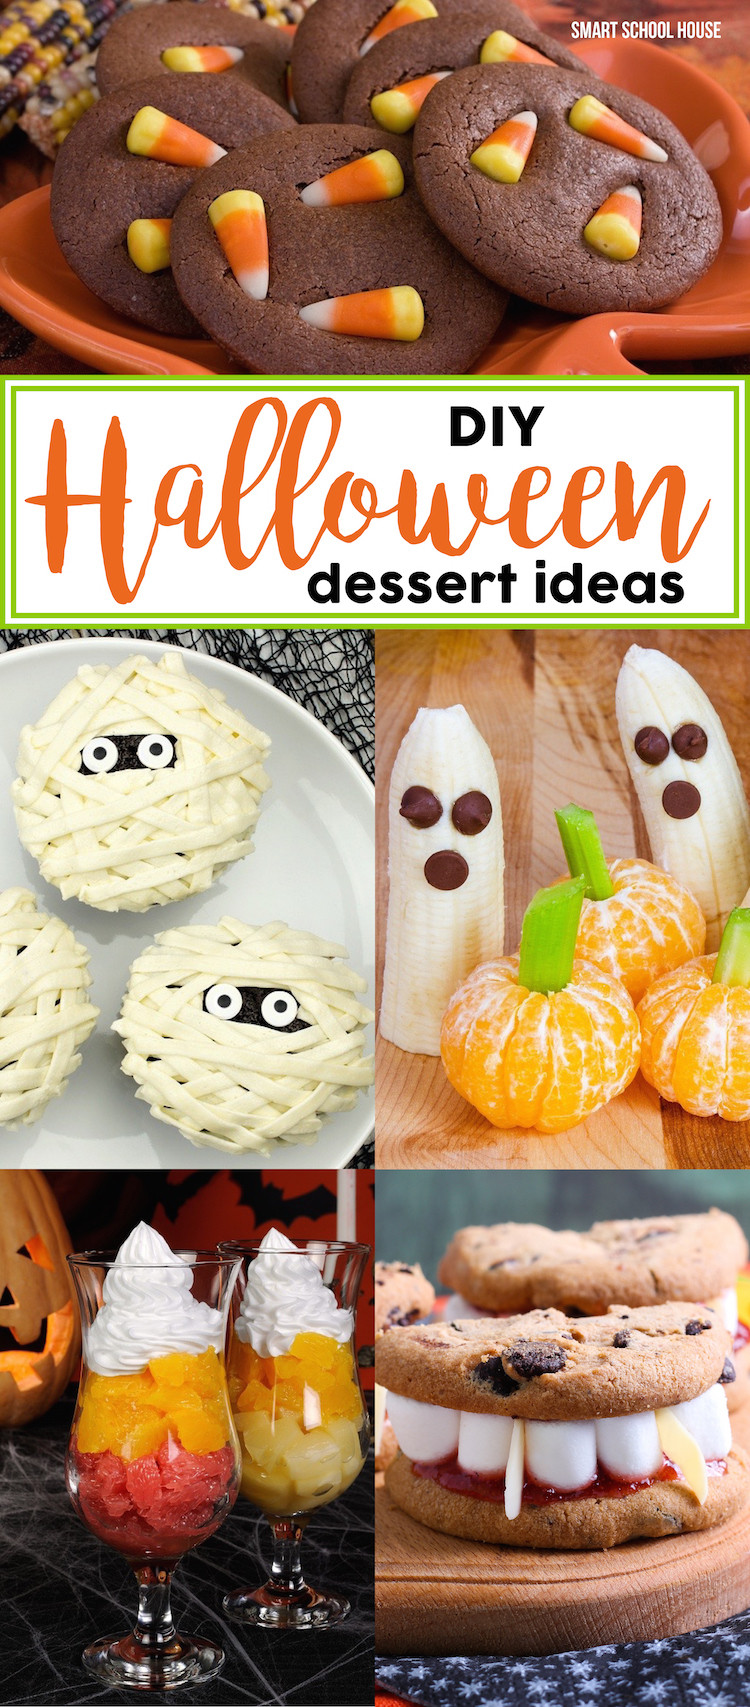 Halloween Desserts Ideas  Halloween Dessert Ideas Page 5 of 22 Smart School House